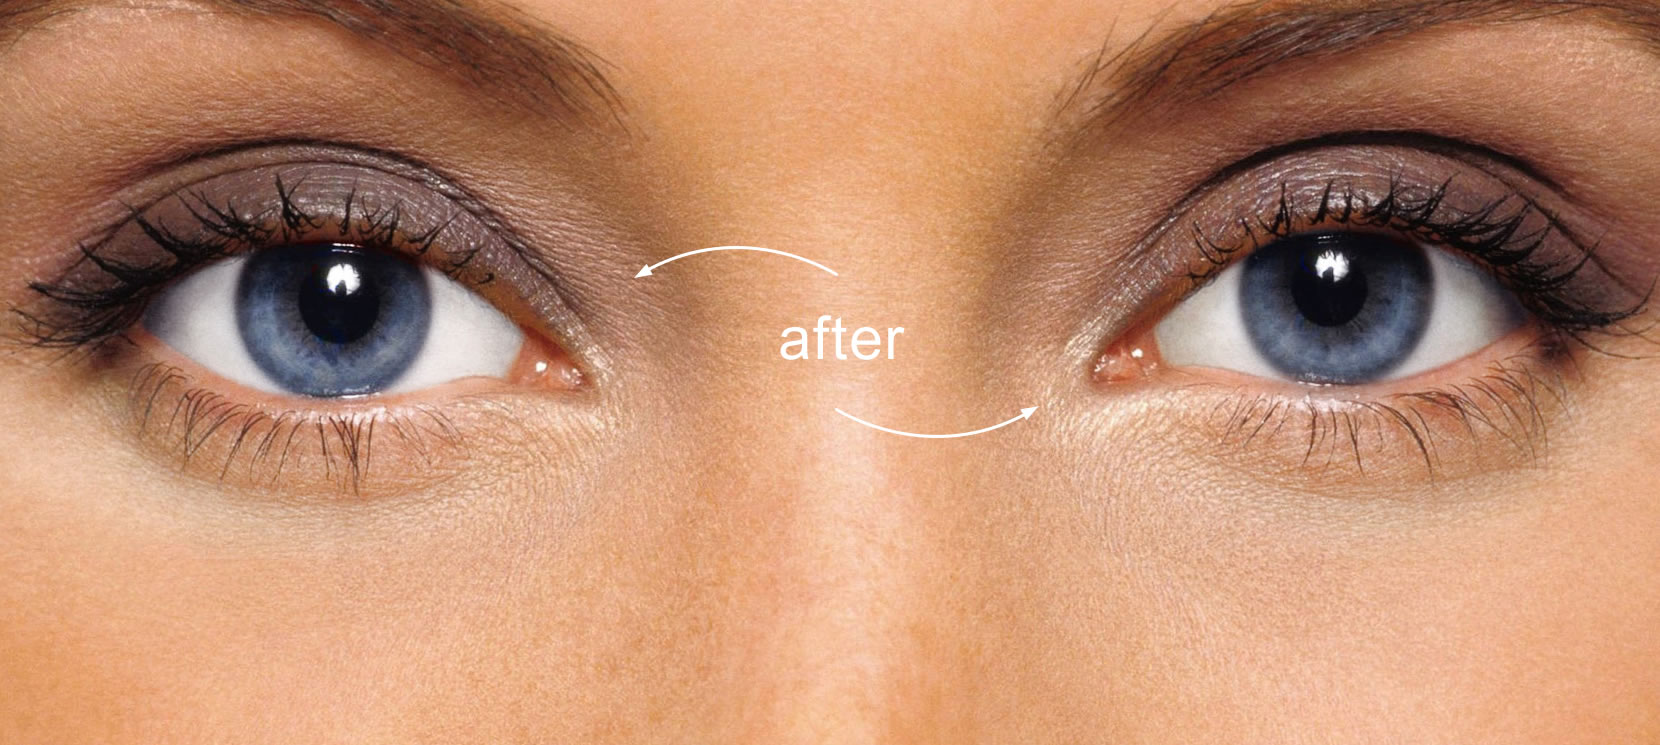 Before online face retouch: red eye effect and yellowish eye whites.